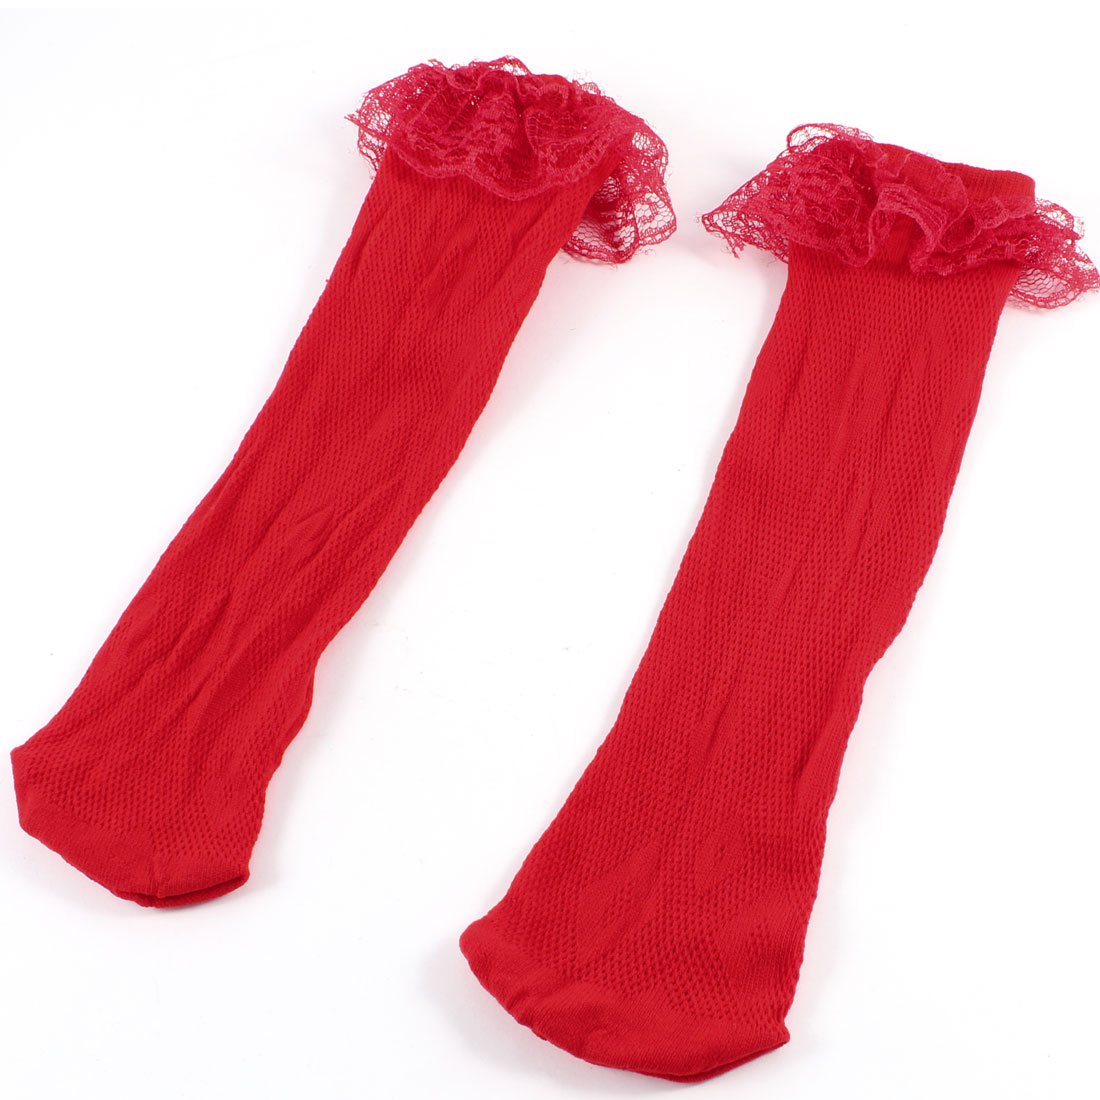 Red Lace Trims Ornament Stretchy Hosiery Ankle Socks for Girls